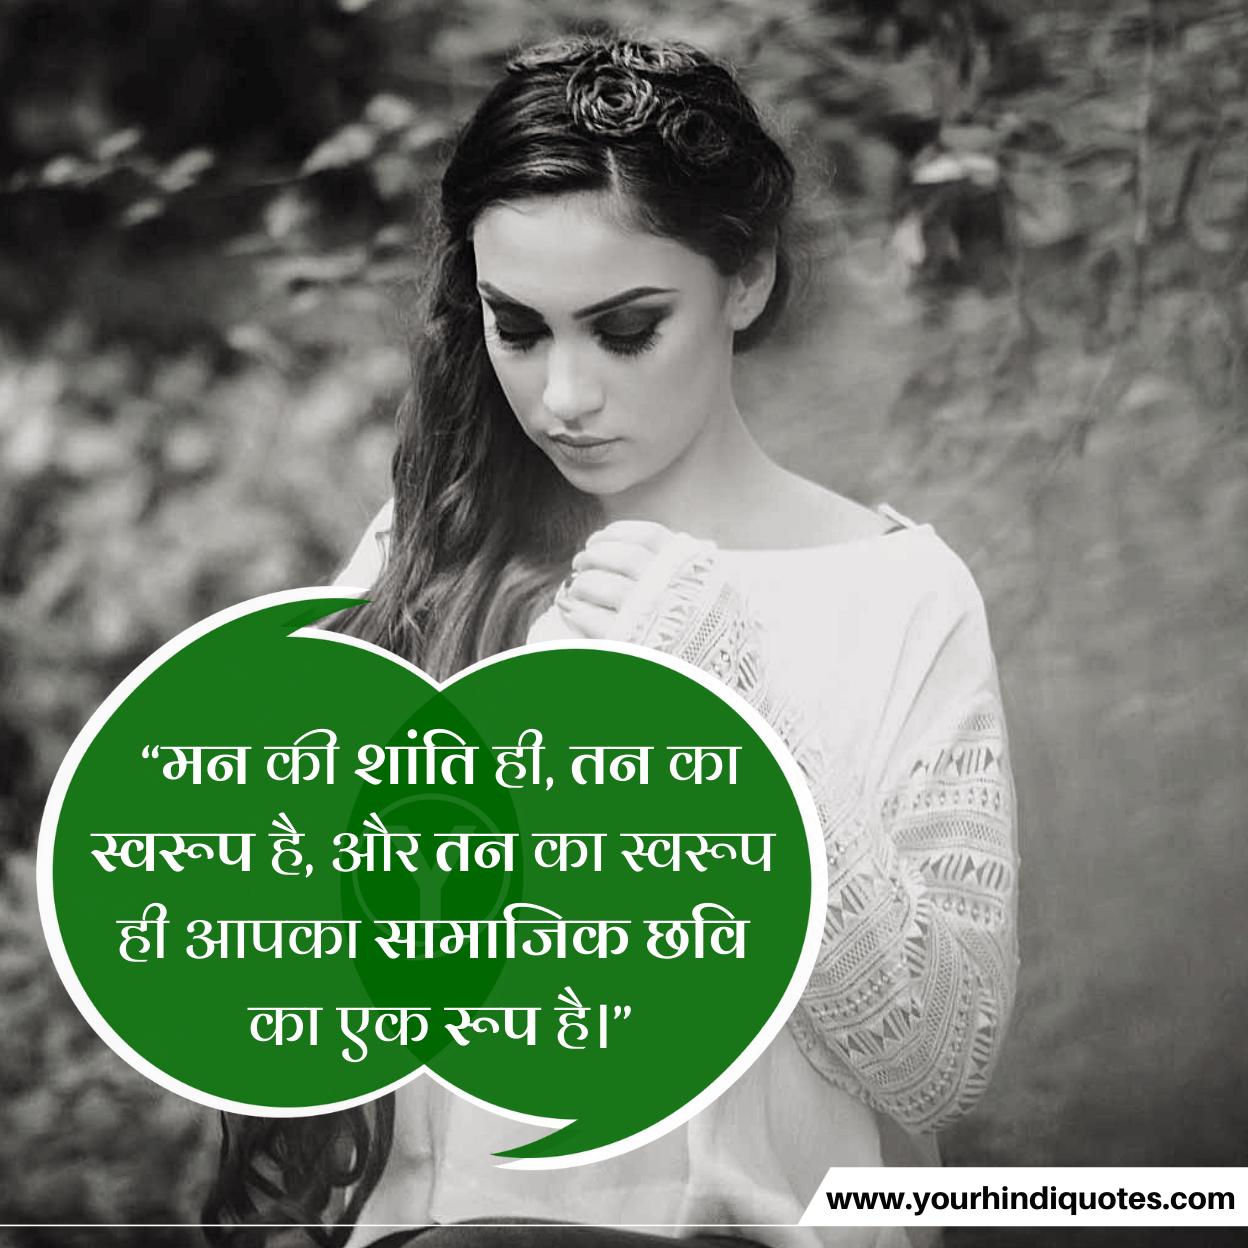 Hindi emotional quotes image